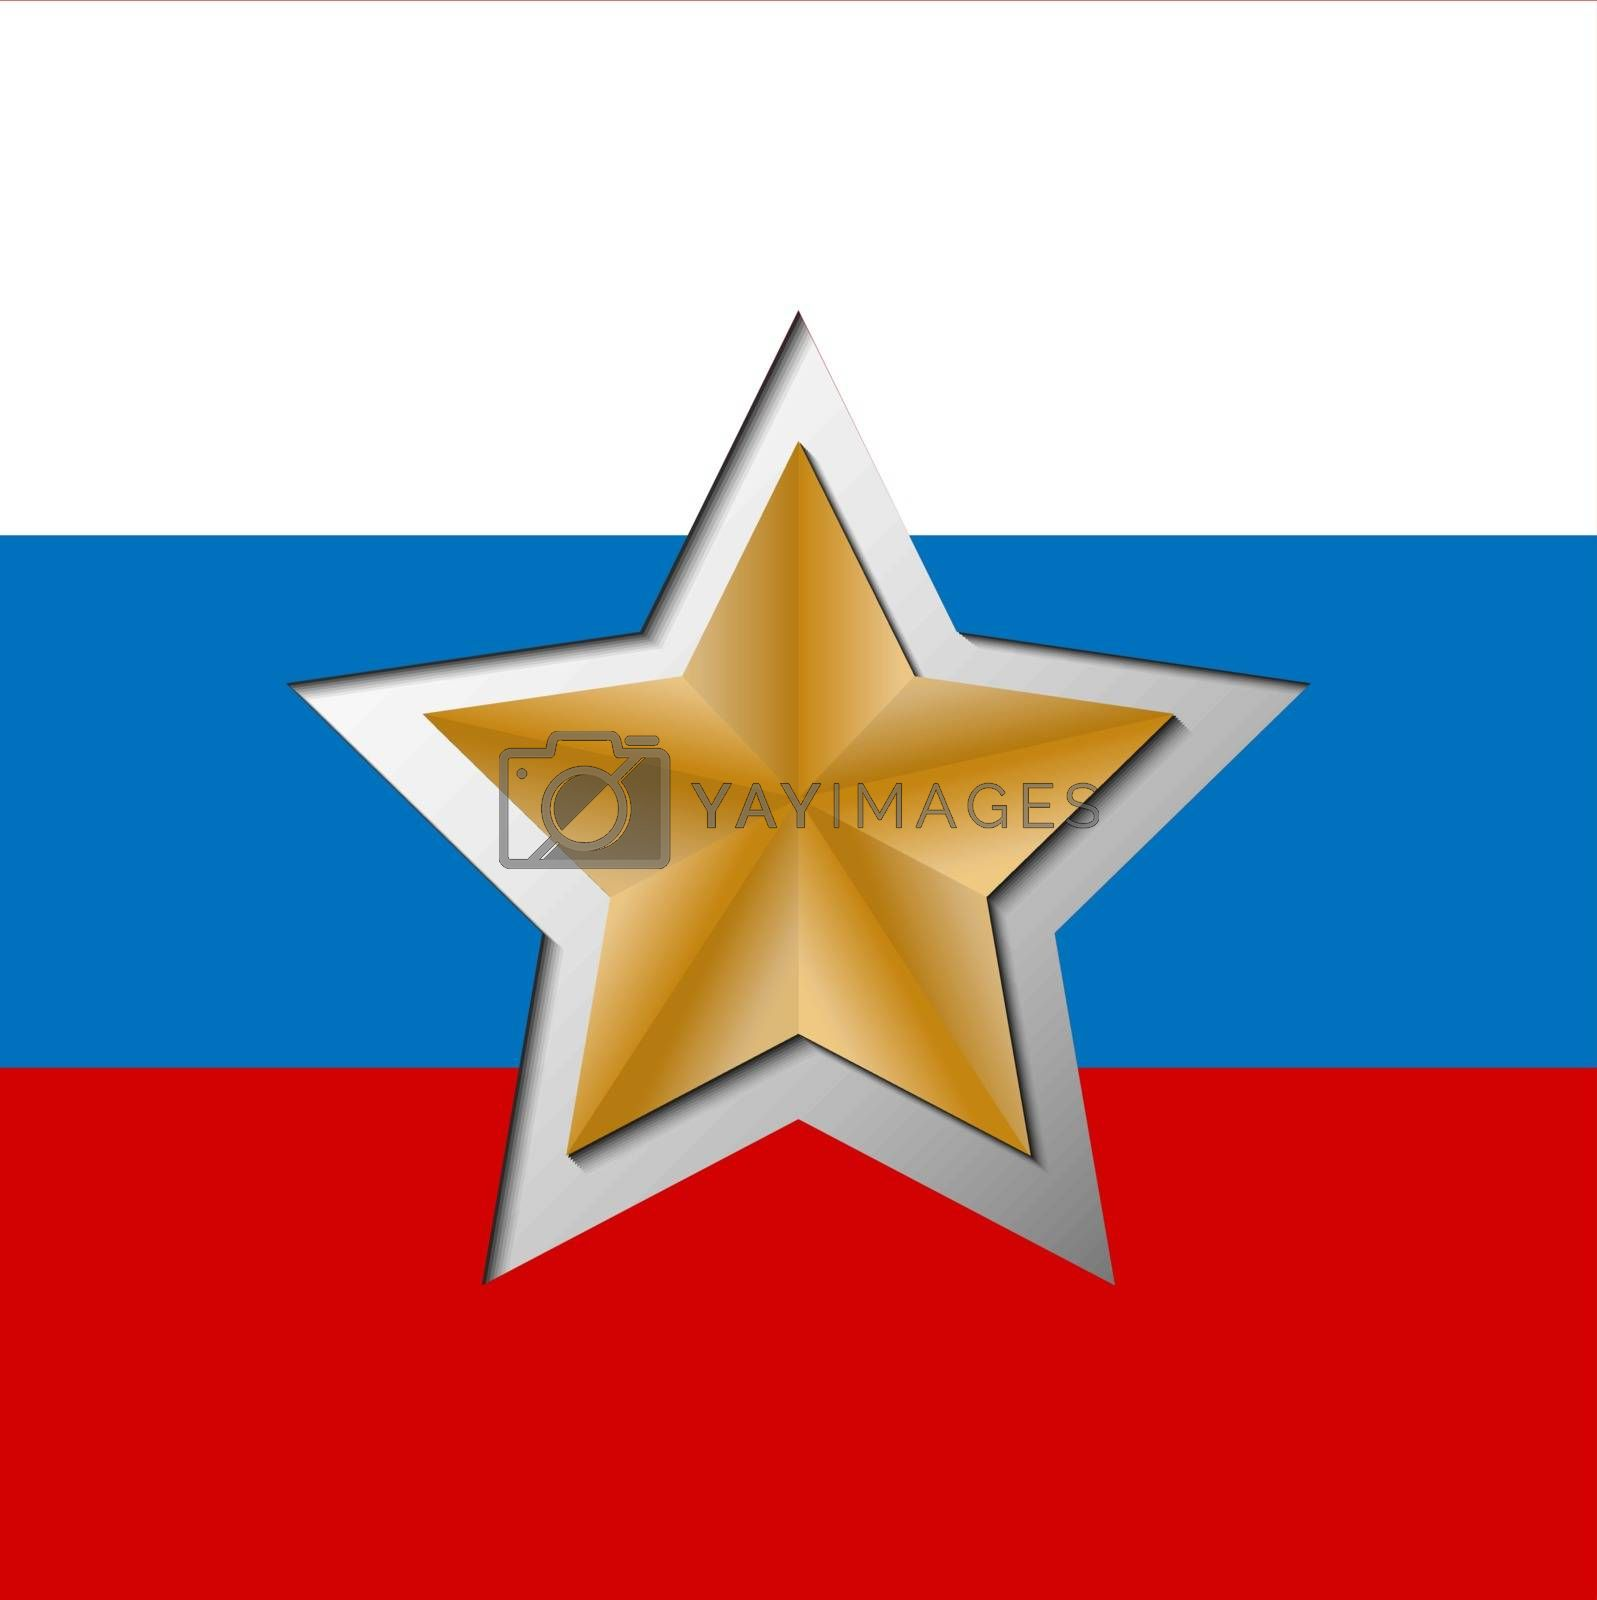 Red five-pointed star carved on the background in the colors of the Russian flag